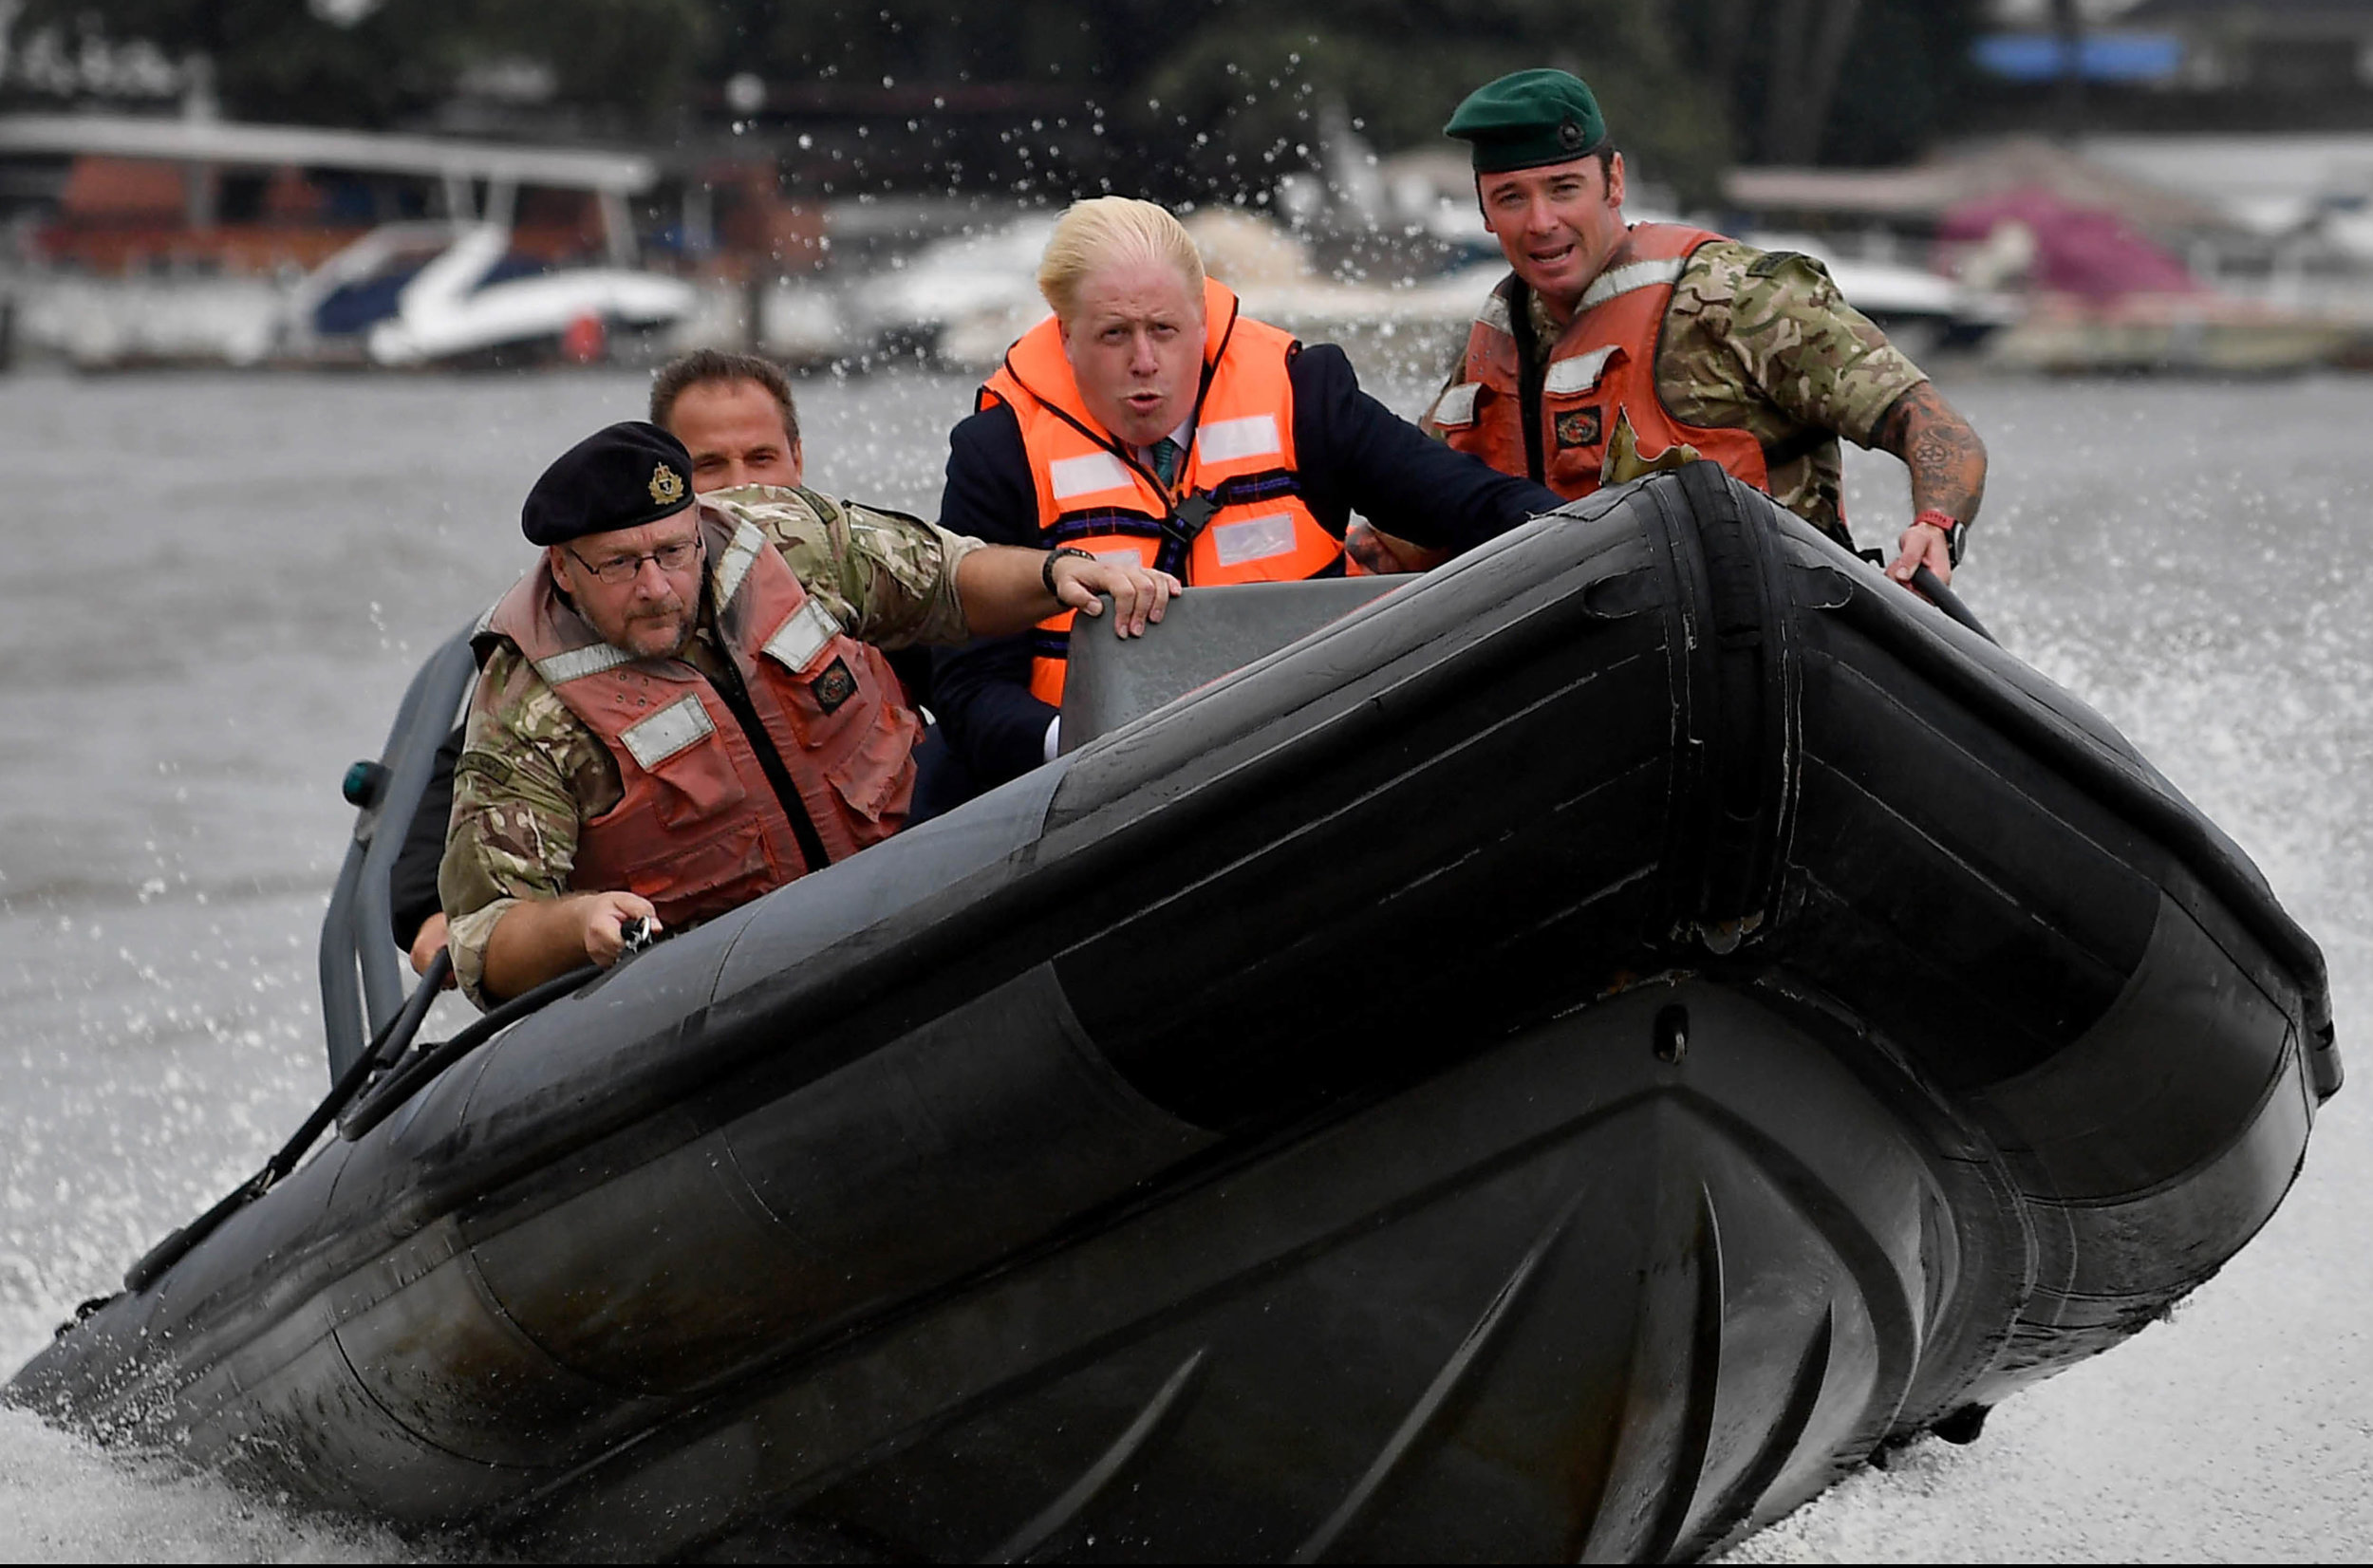 The Foreign Secretary, Boris Johnson, piloting a rib with members of the Royal Navy and Royal Marines who are based in Lagos, Nigeria, training the Nigerian Navy to tackle piracy.Photo by Andrew Parsons  31 August 2017